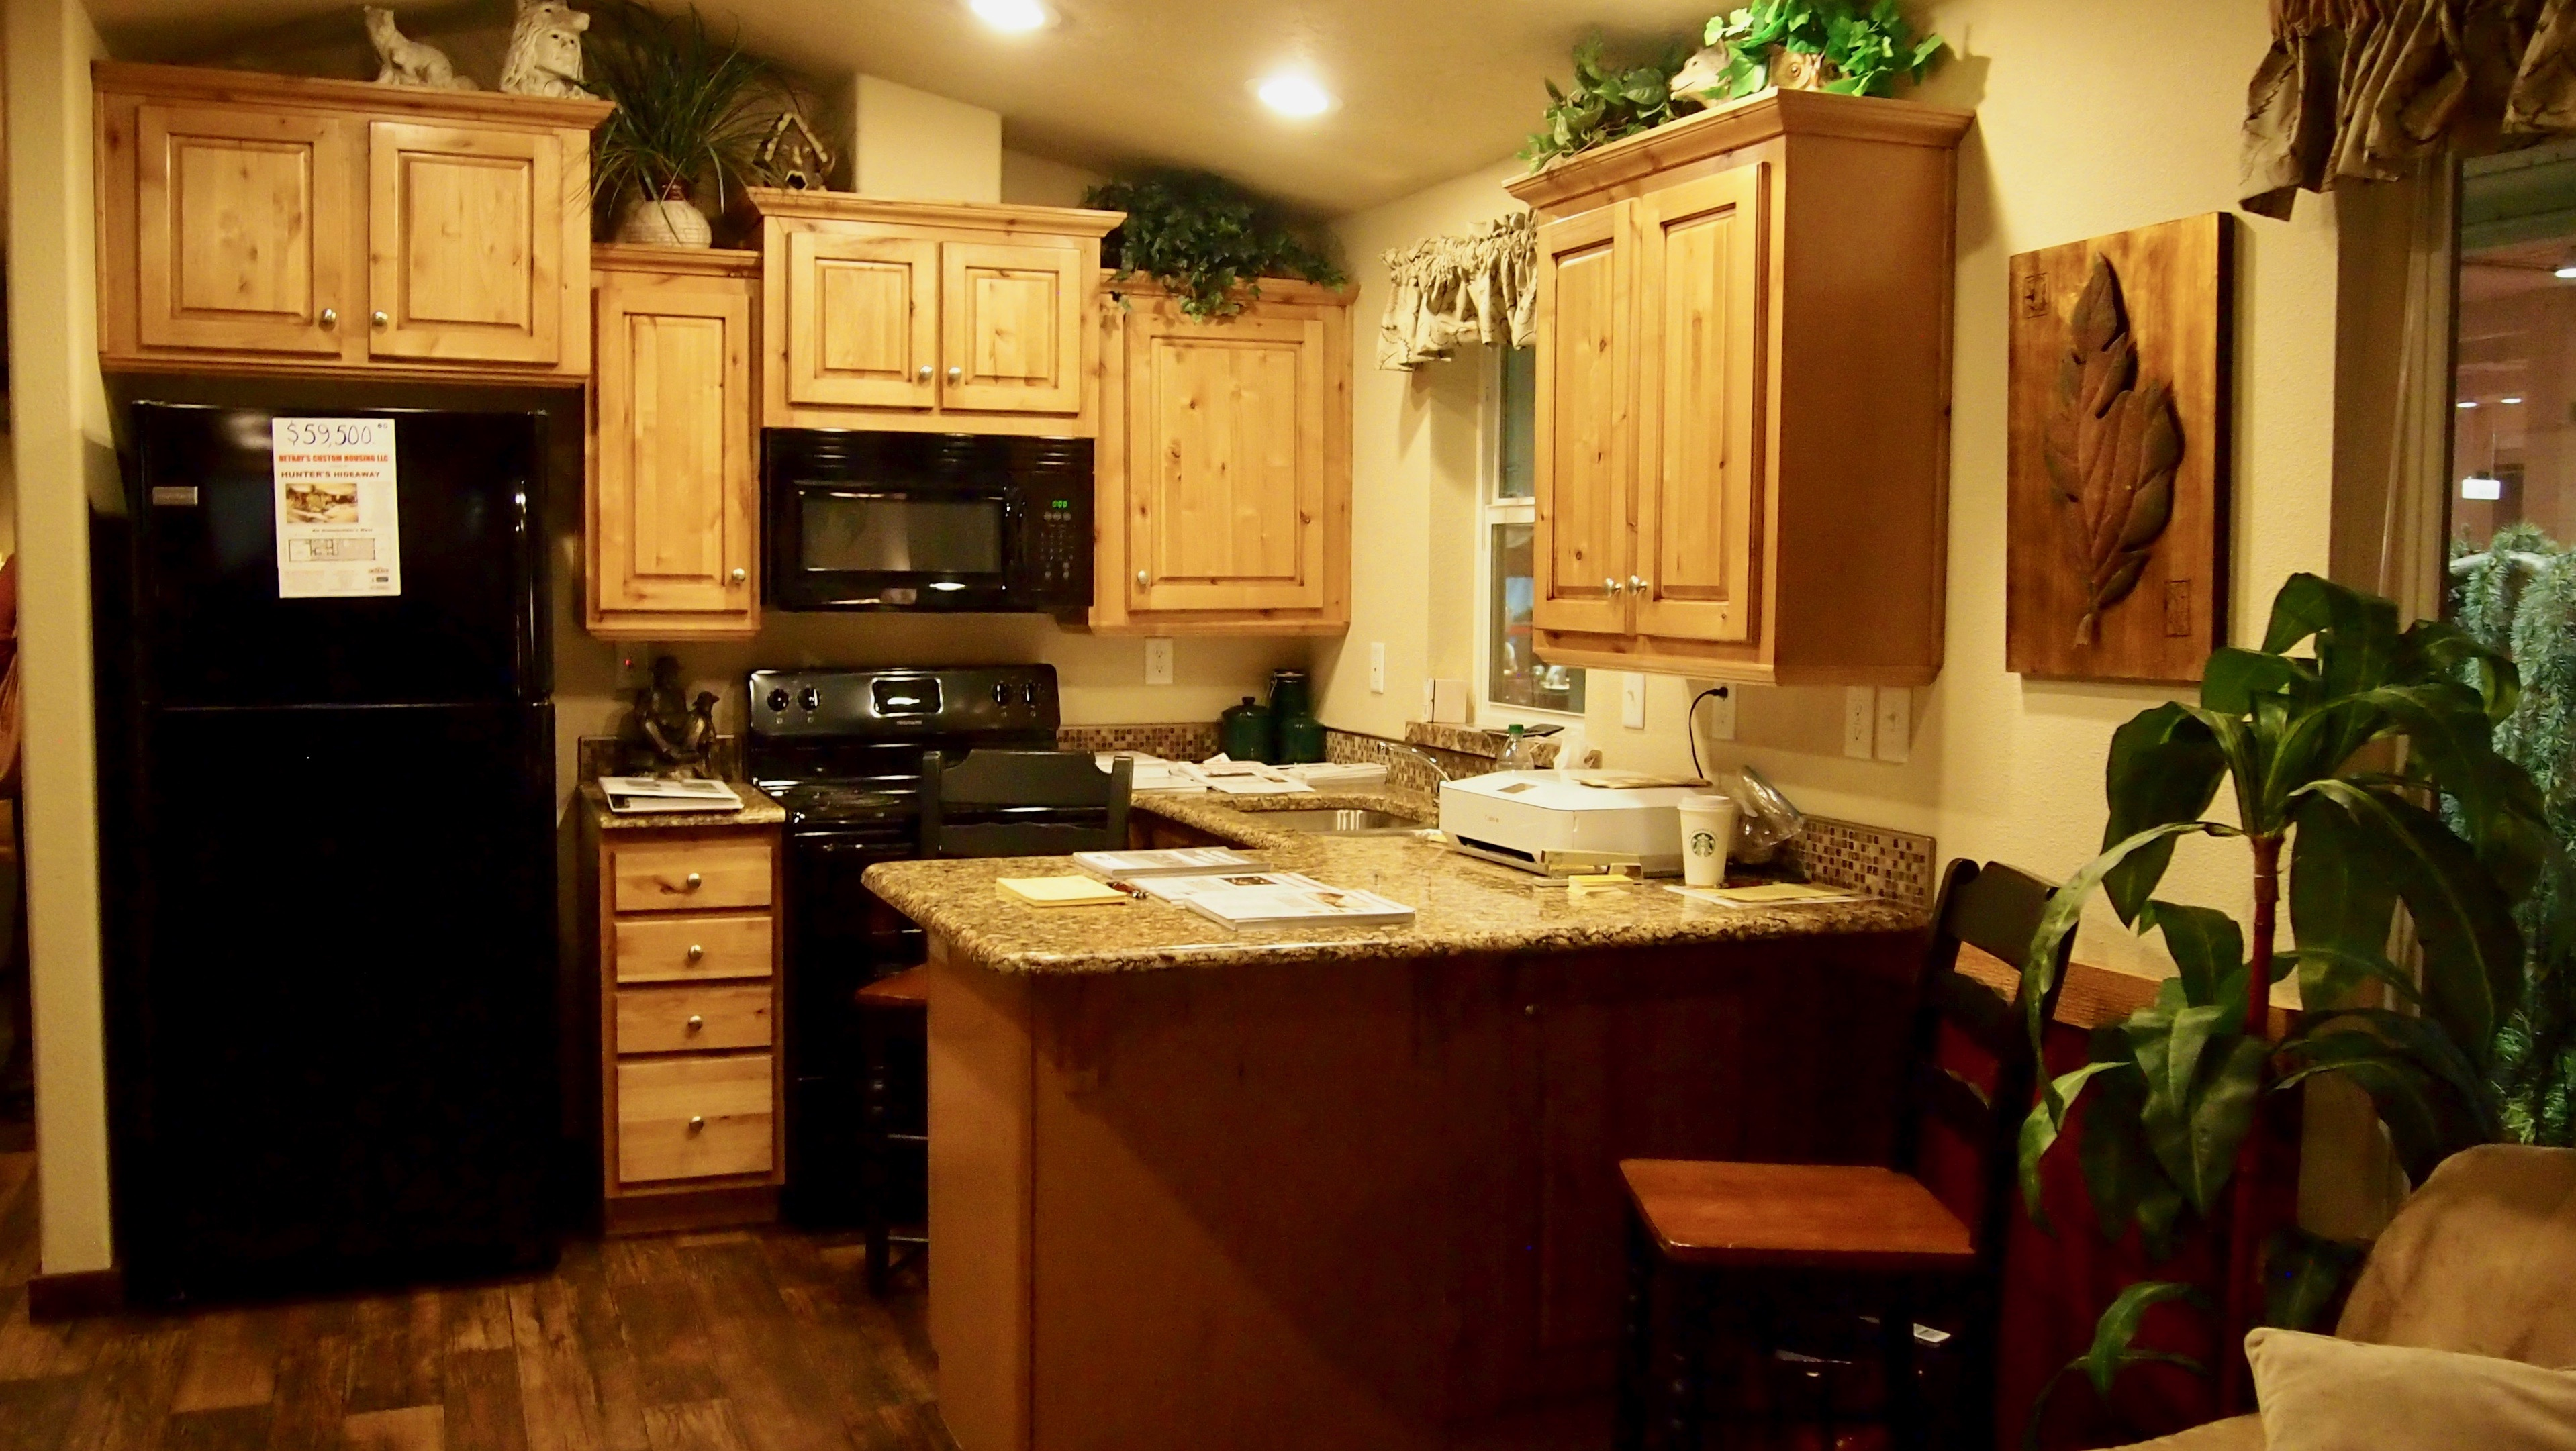 10 tiny homes cabins and sheds at the seattle home show - Seattle kitchen appliances ...